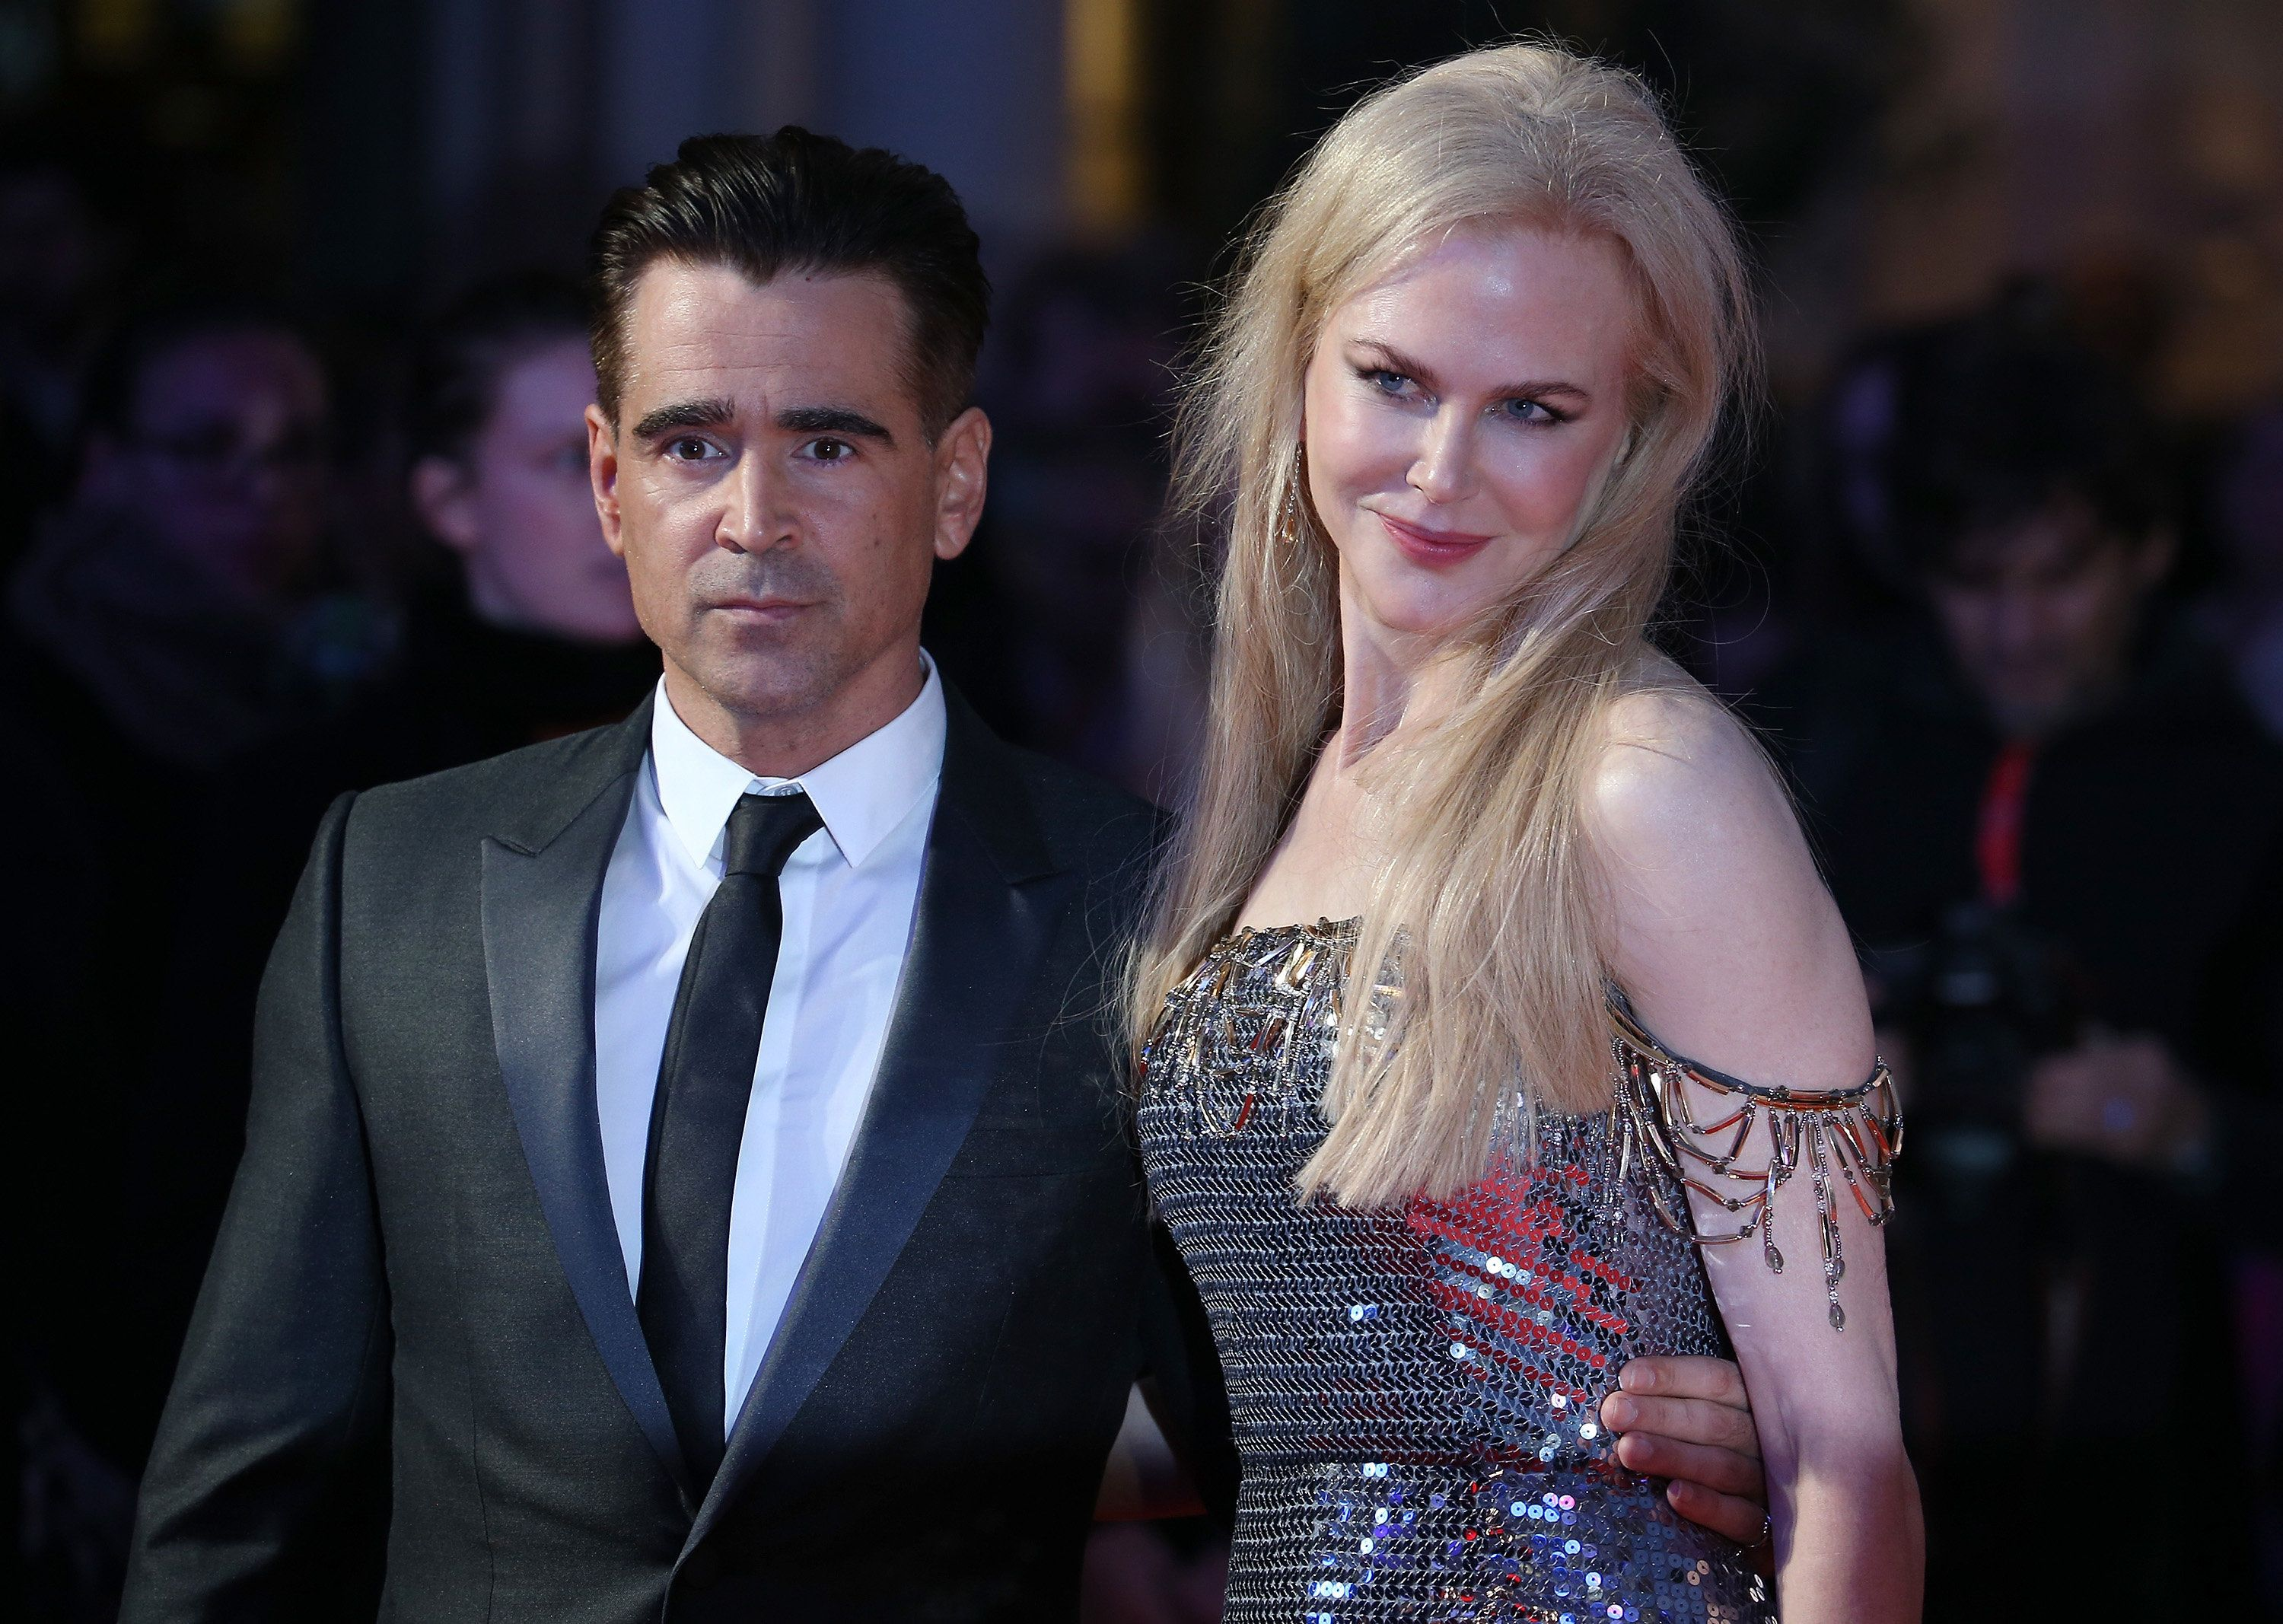 From Sponge Baths To Sex Games, It's Nicole Kidman And Colin Farrell's Year